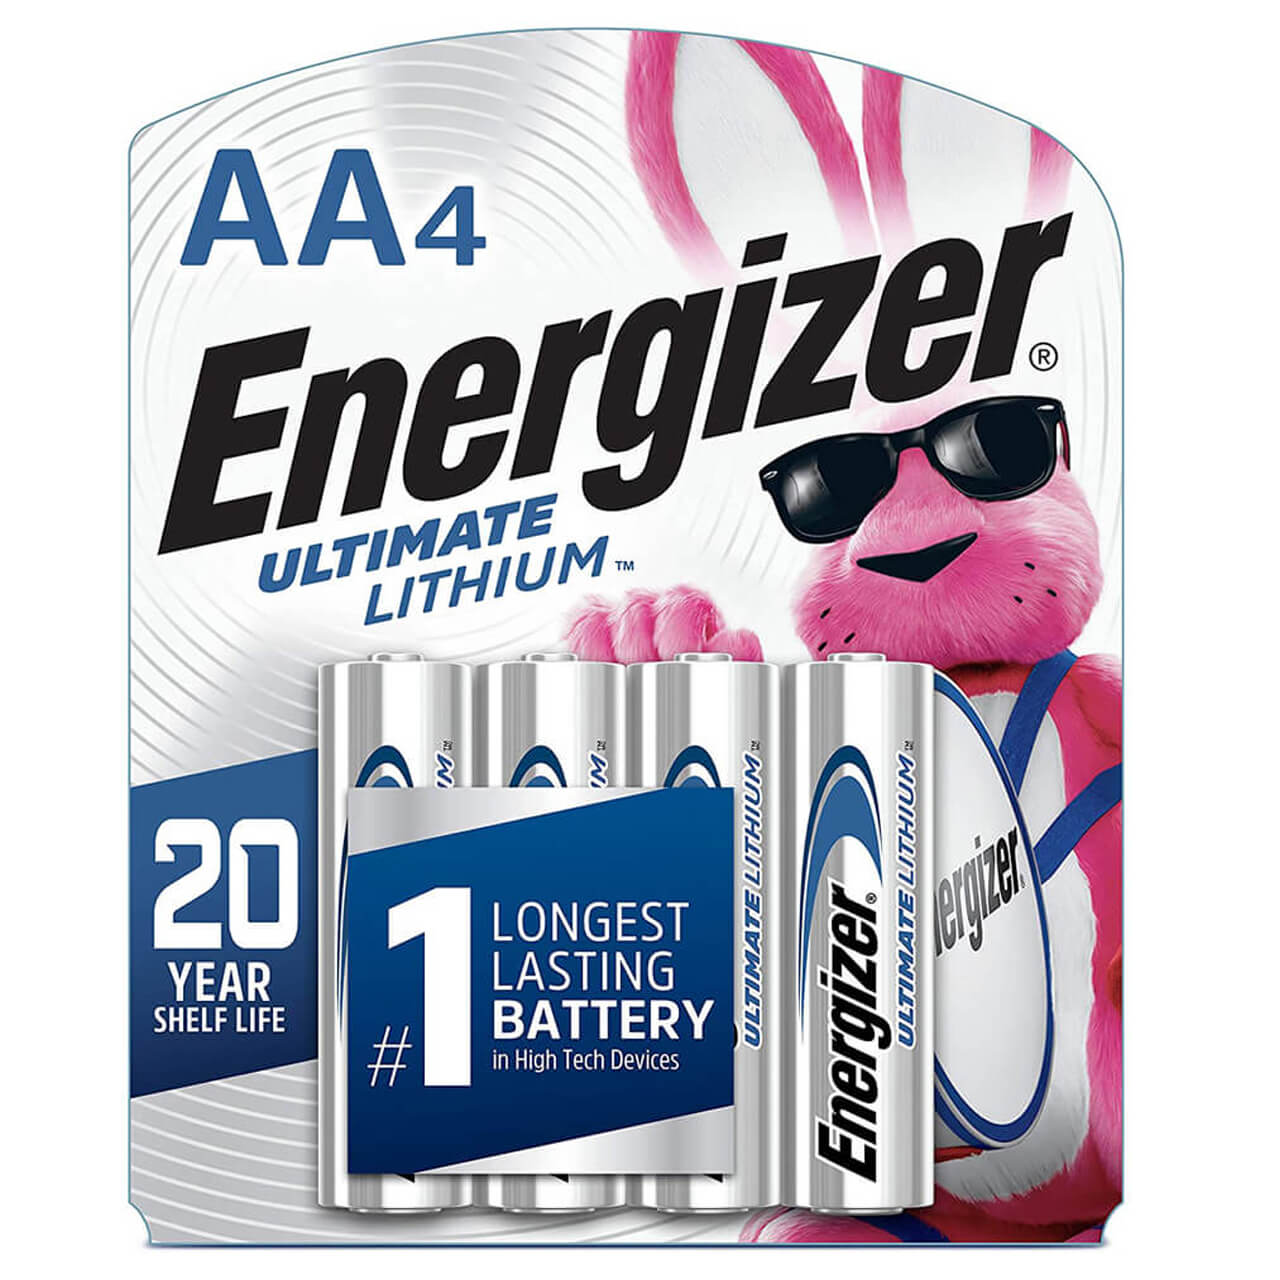 Energizer L91SBP-4 Ultimate LI AA-4 Battery, 4 Count (Pack of 1)